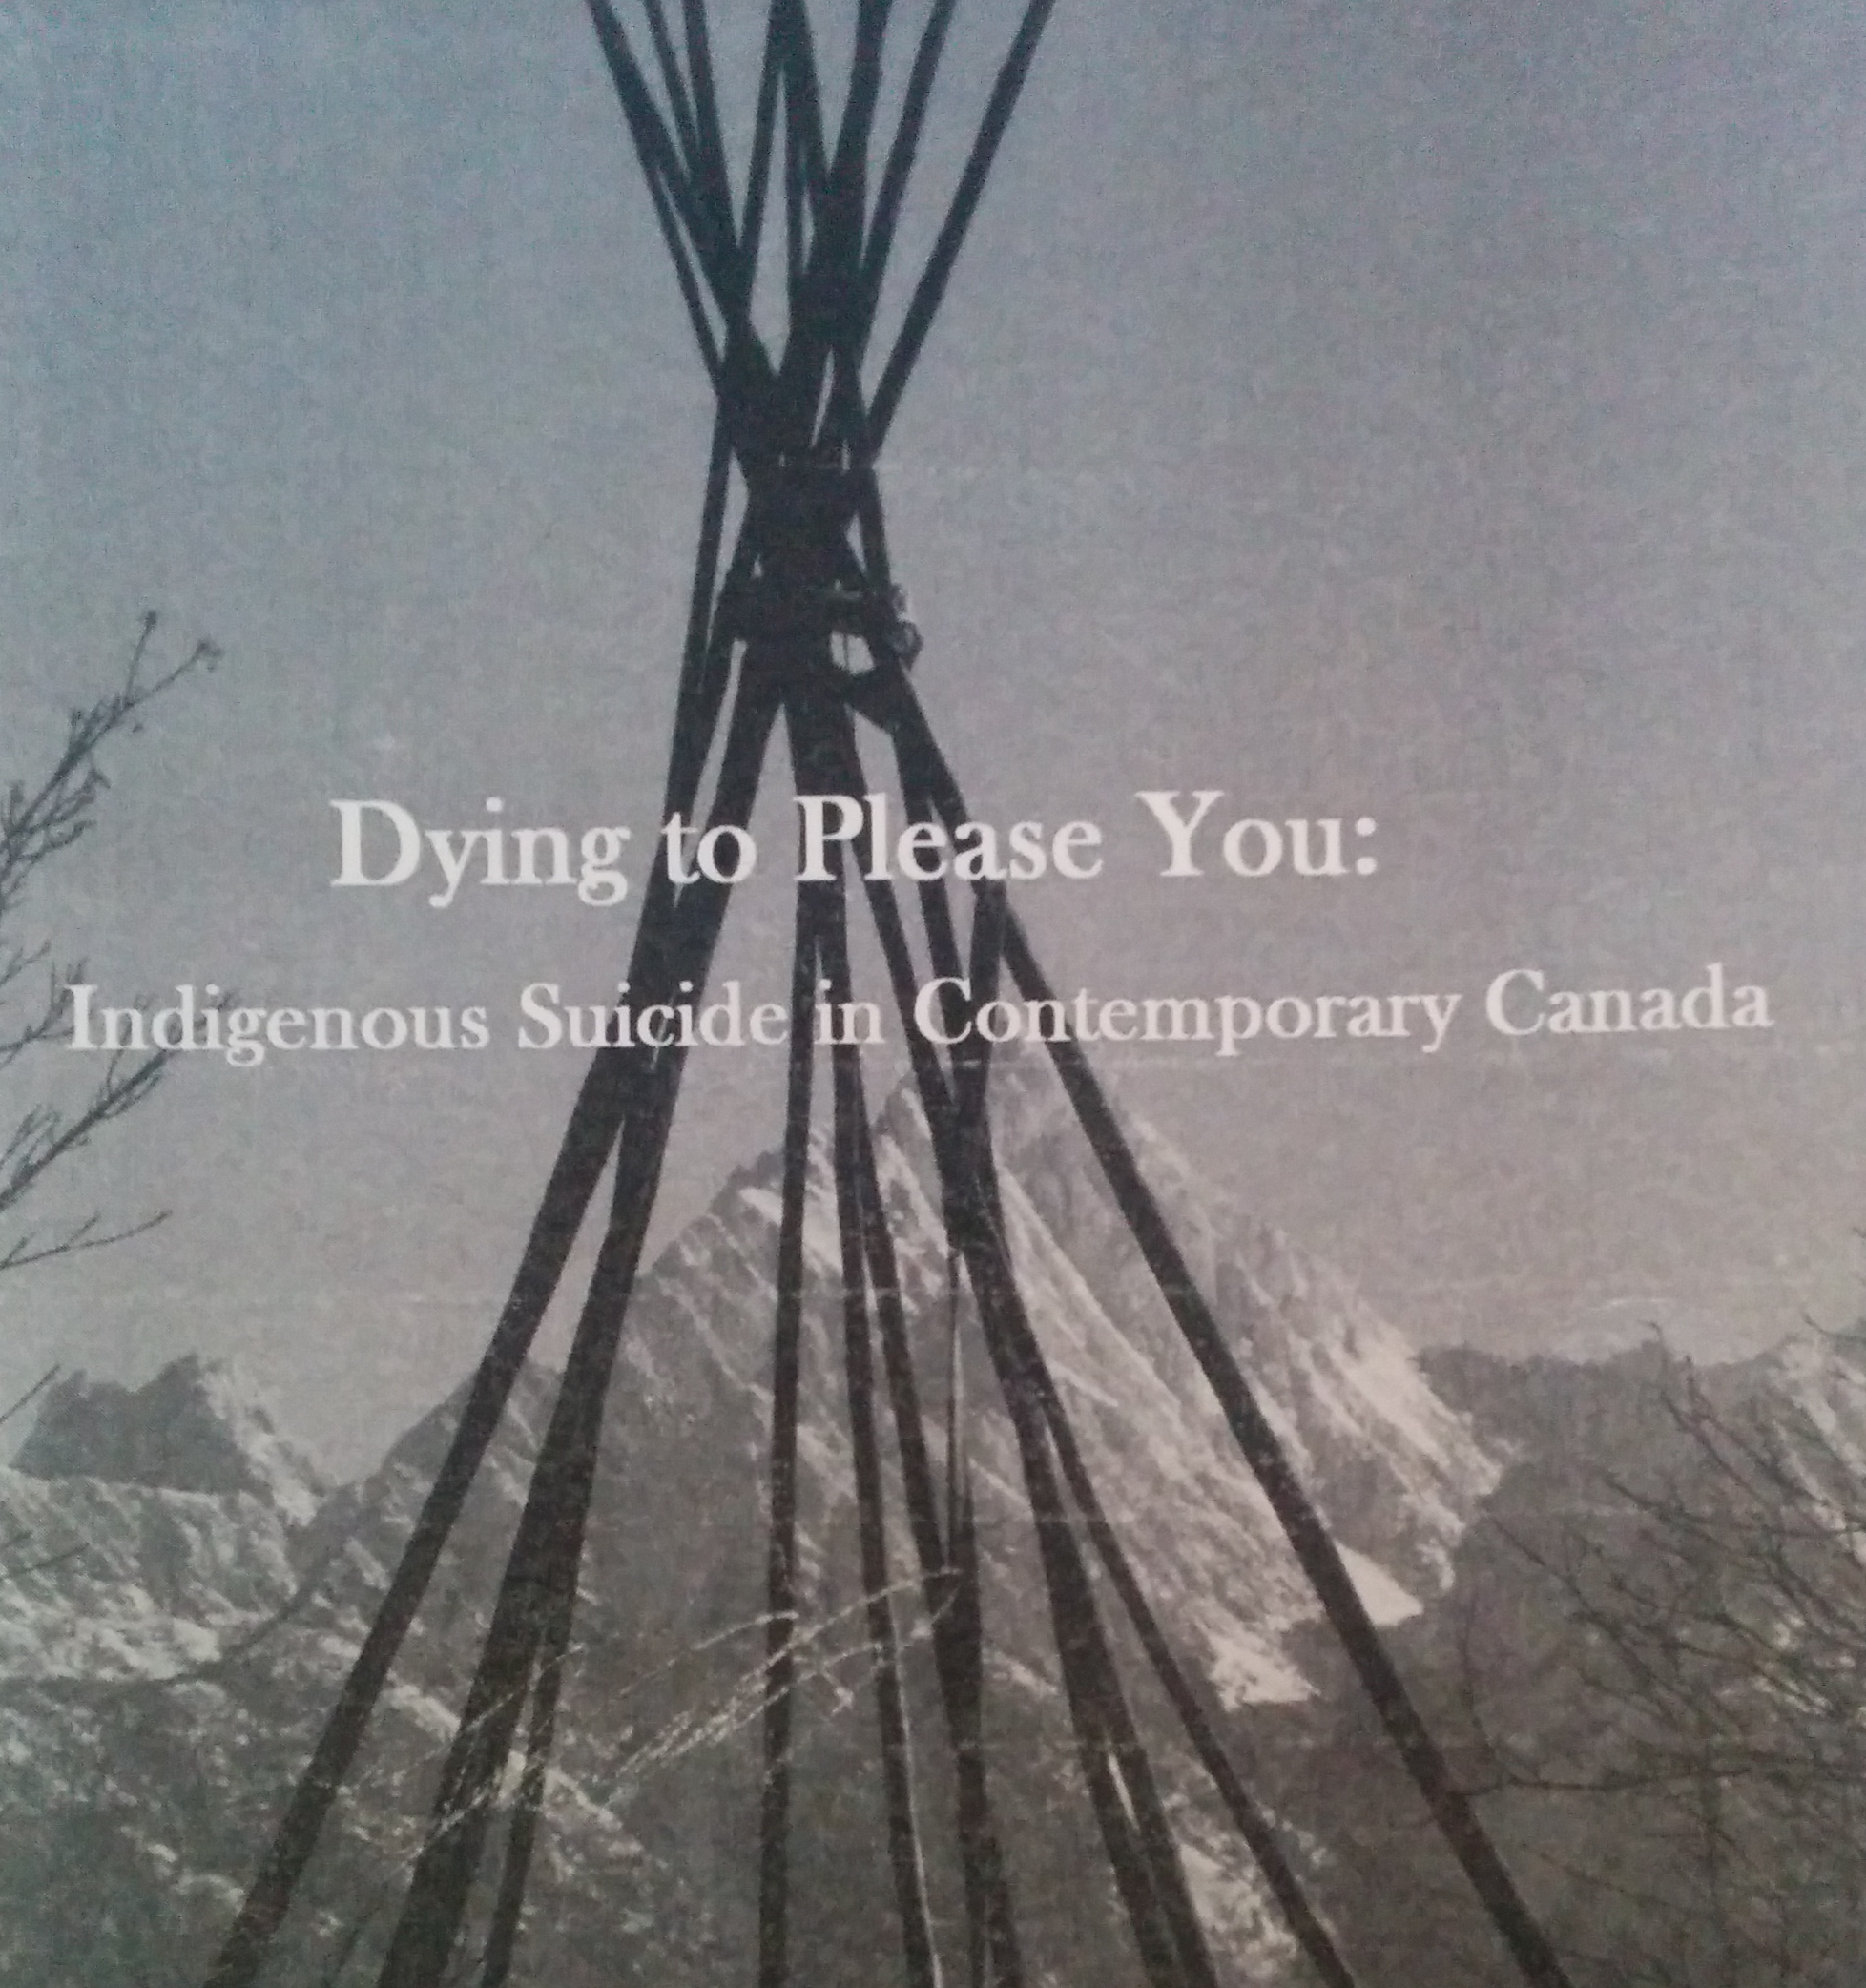 """""""We ask that you refuse to die:"""" New book focuses on Indigenous suicide in Canada today"""